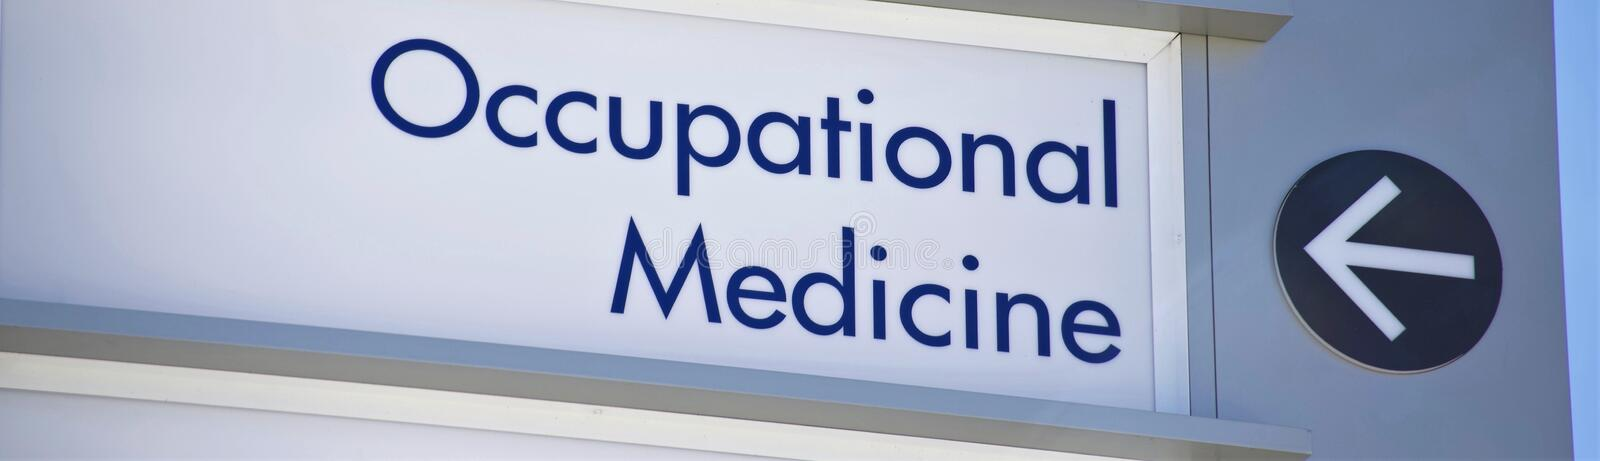 Occupational and Industrial Medicine royalty free stock photography